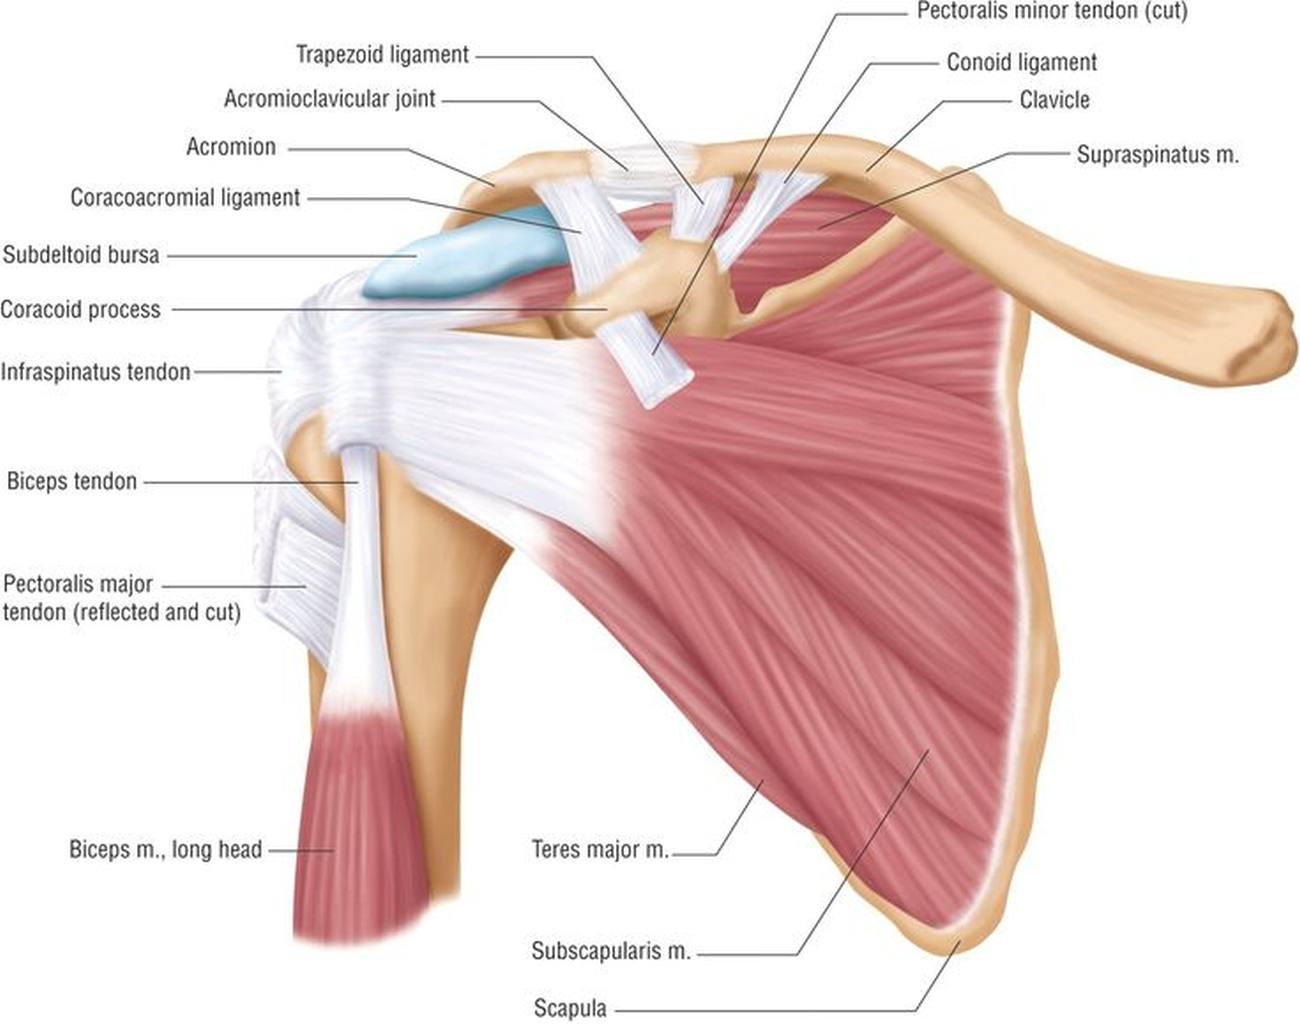 8 Ways to Treat a Rotator Cuff Injury